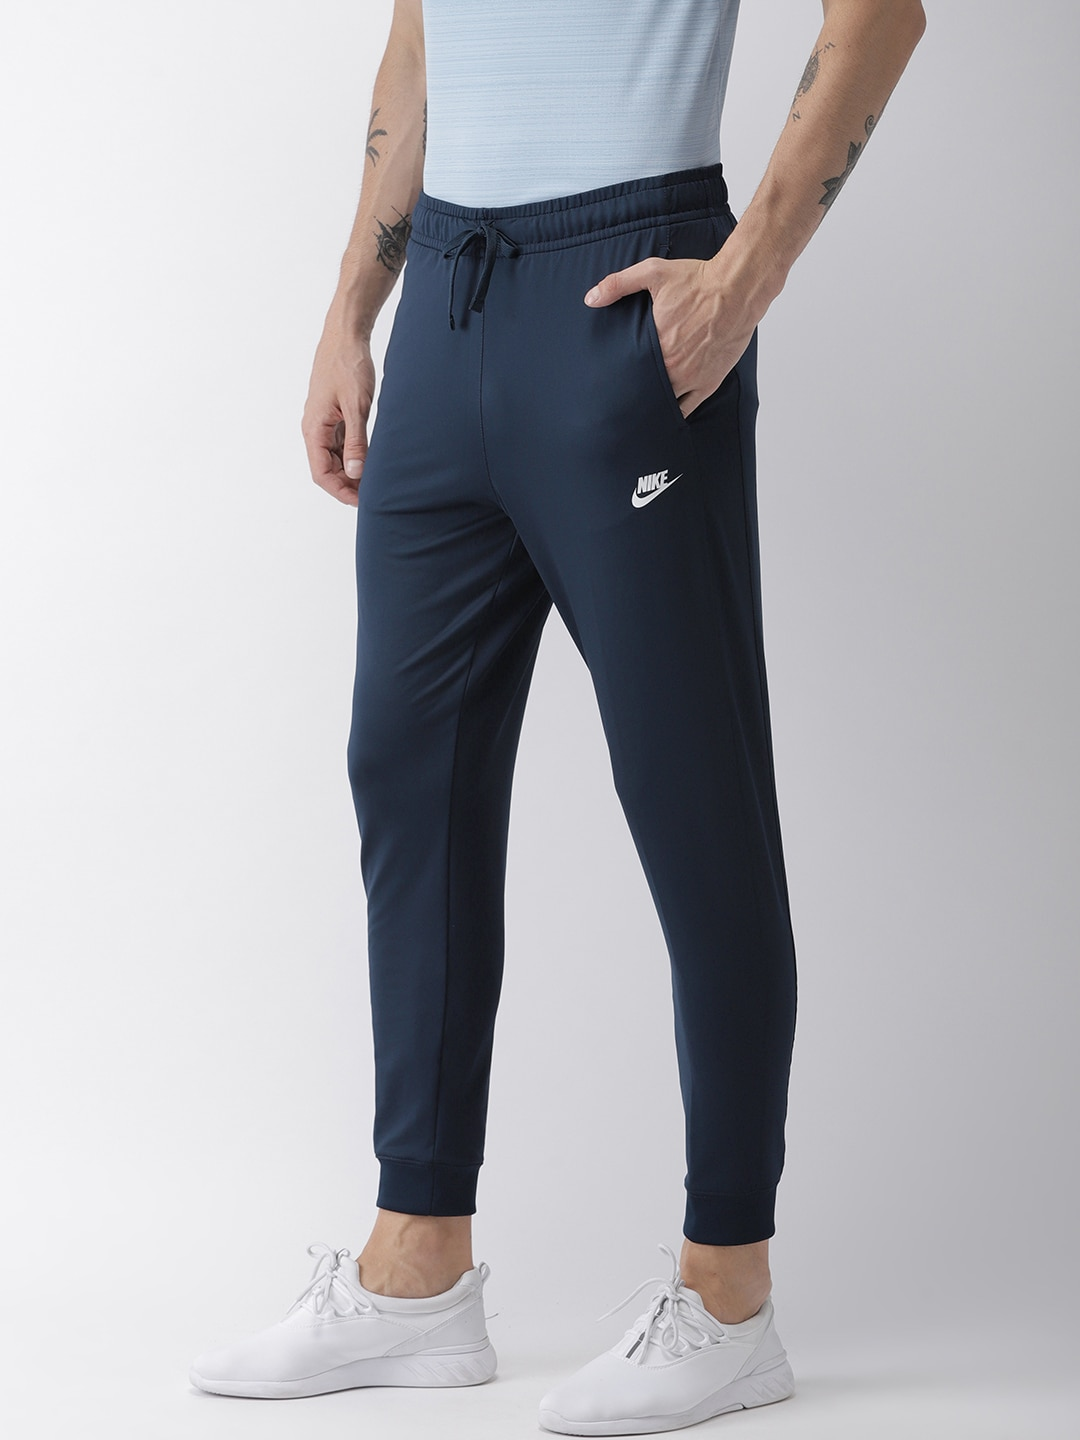 0e27bbb9afe0 Nike Jogger - Buy Nike Jogger online in India